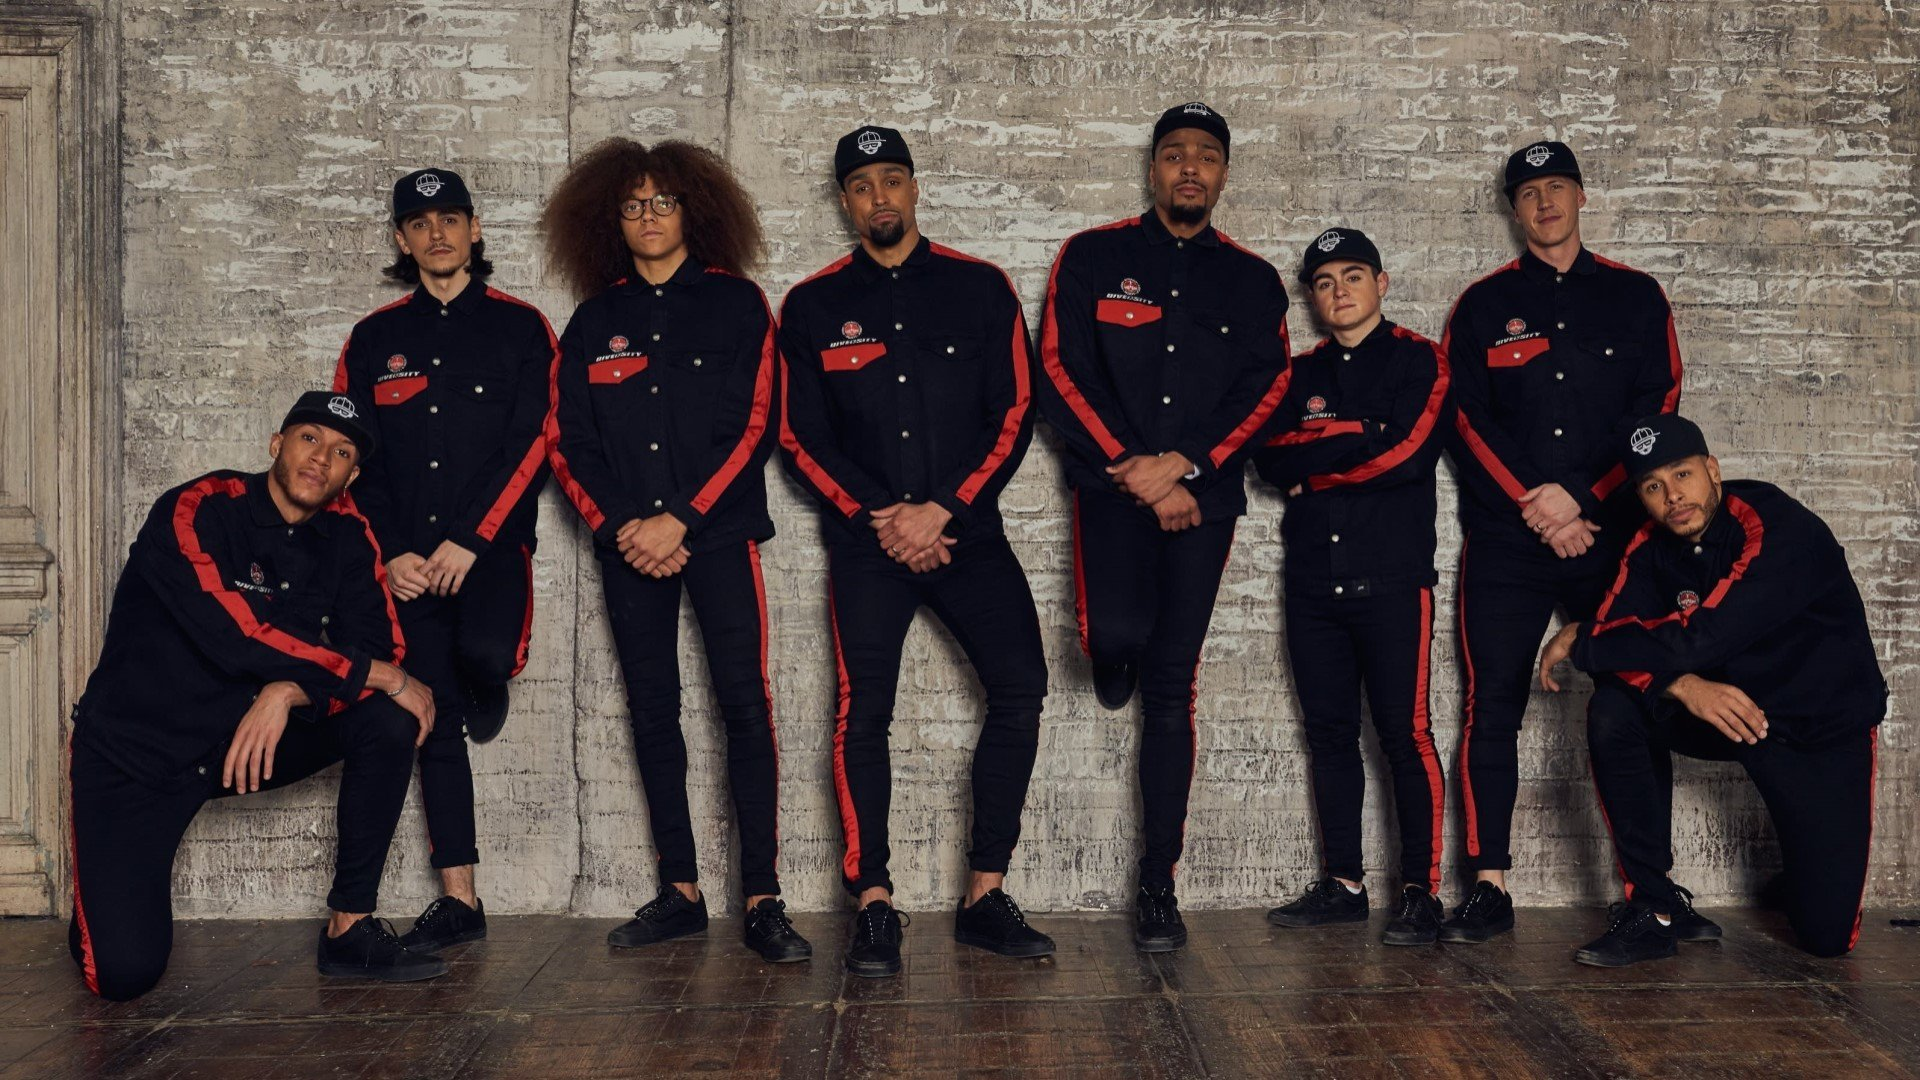 Diversity - Born Ready 'The 10 Year Anniversary Tour' at New Theatre, Oxford